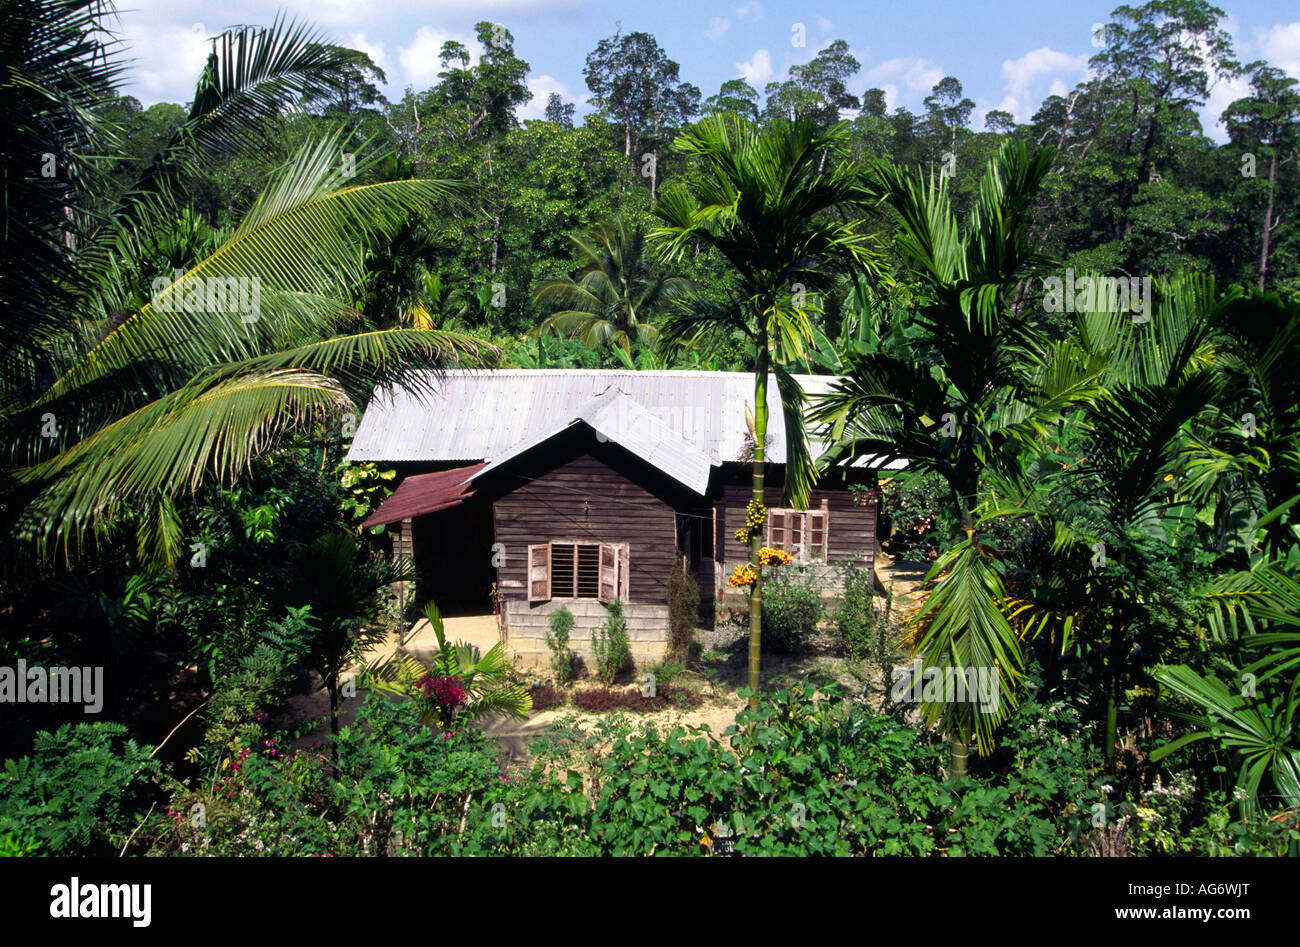 India middle andaman island betapur small house in verdant garden